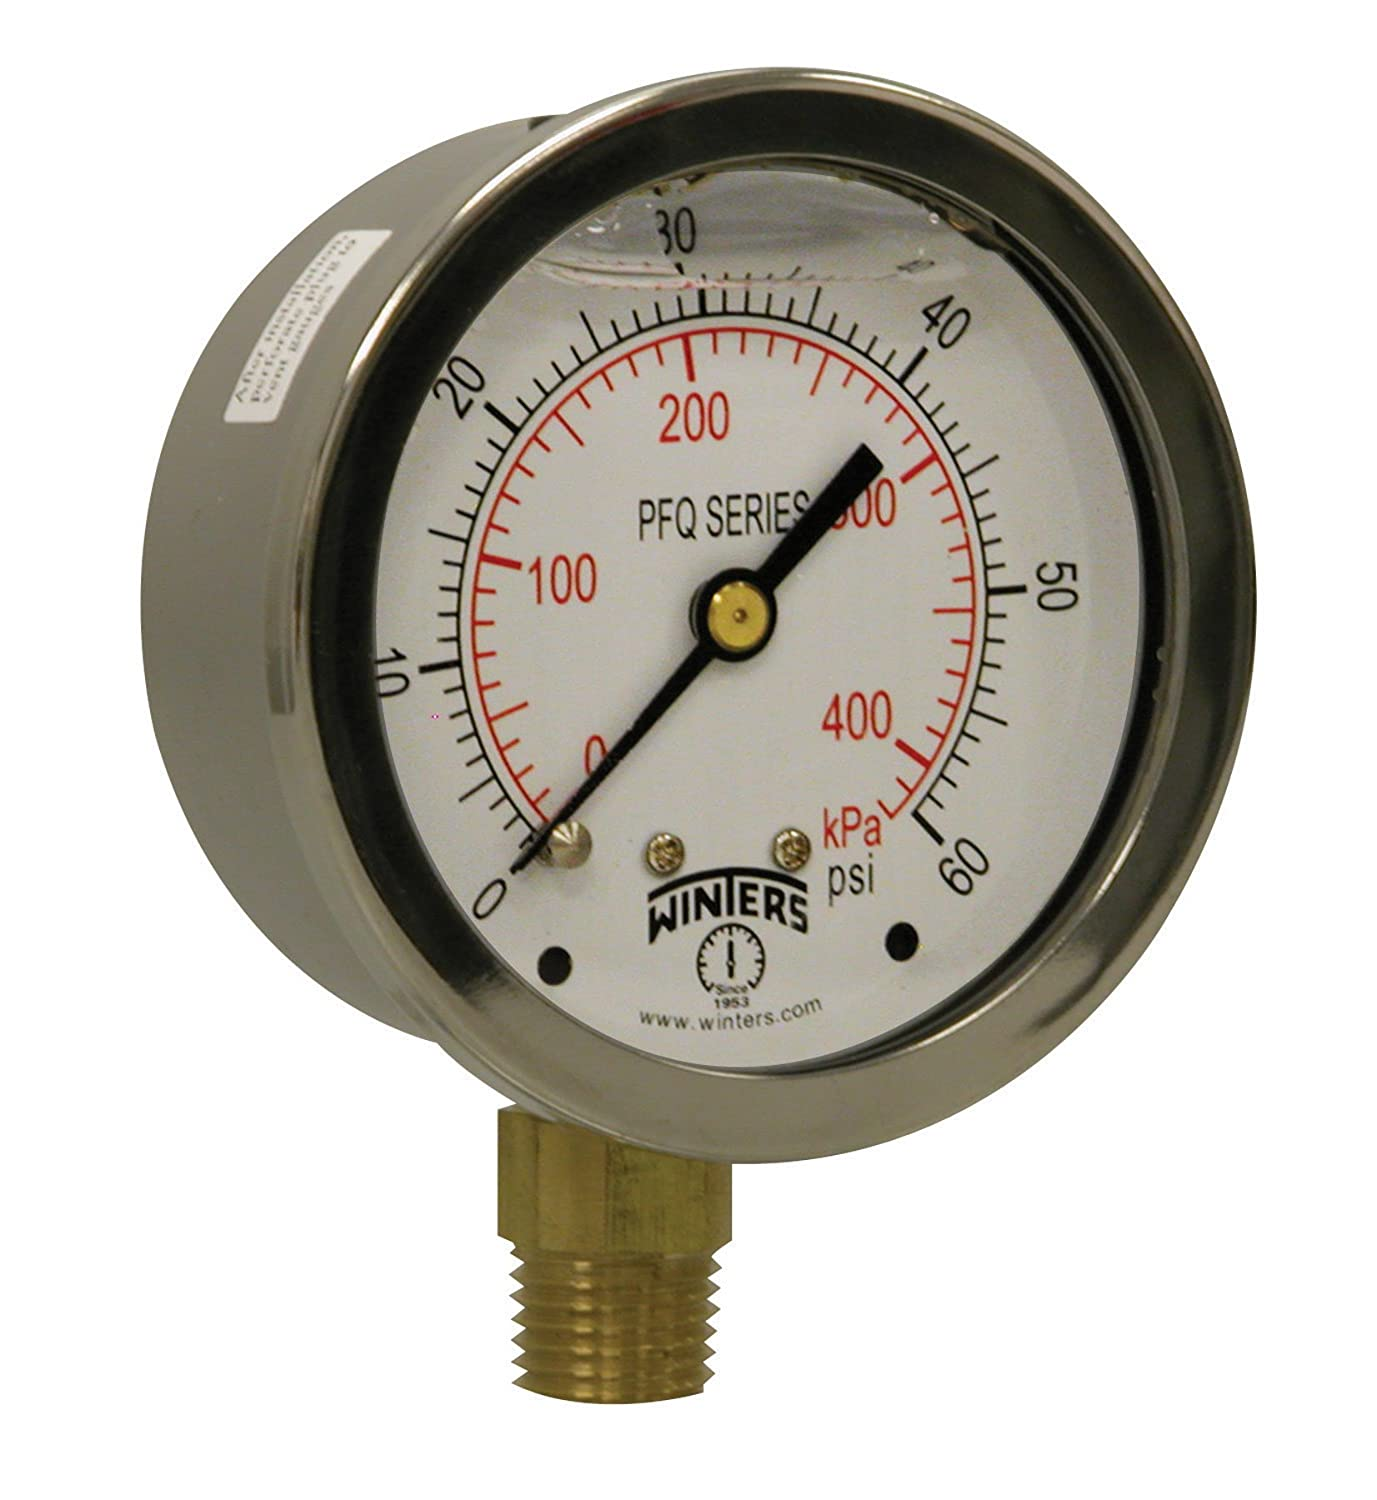 """Winters PFQ Series Stainless Steel 304 Dual Scale Liquid Filled Pressure Gauge with Brass Internals, 0-60 psi/kpa,2-1/2"""" Dial Display, +/-1.5% Accuracy, 1/4"""" NPT Bottom Mount"""